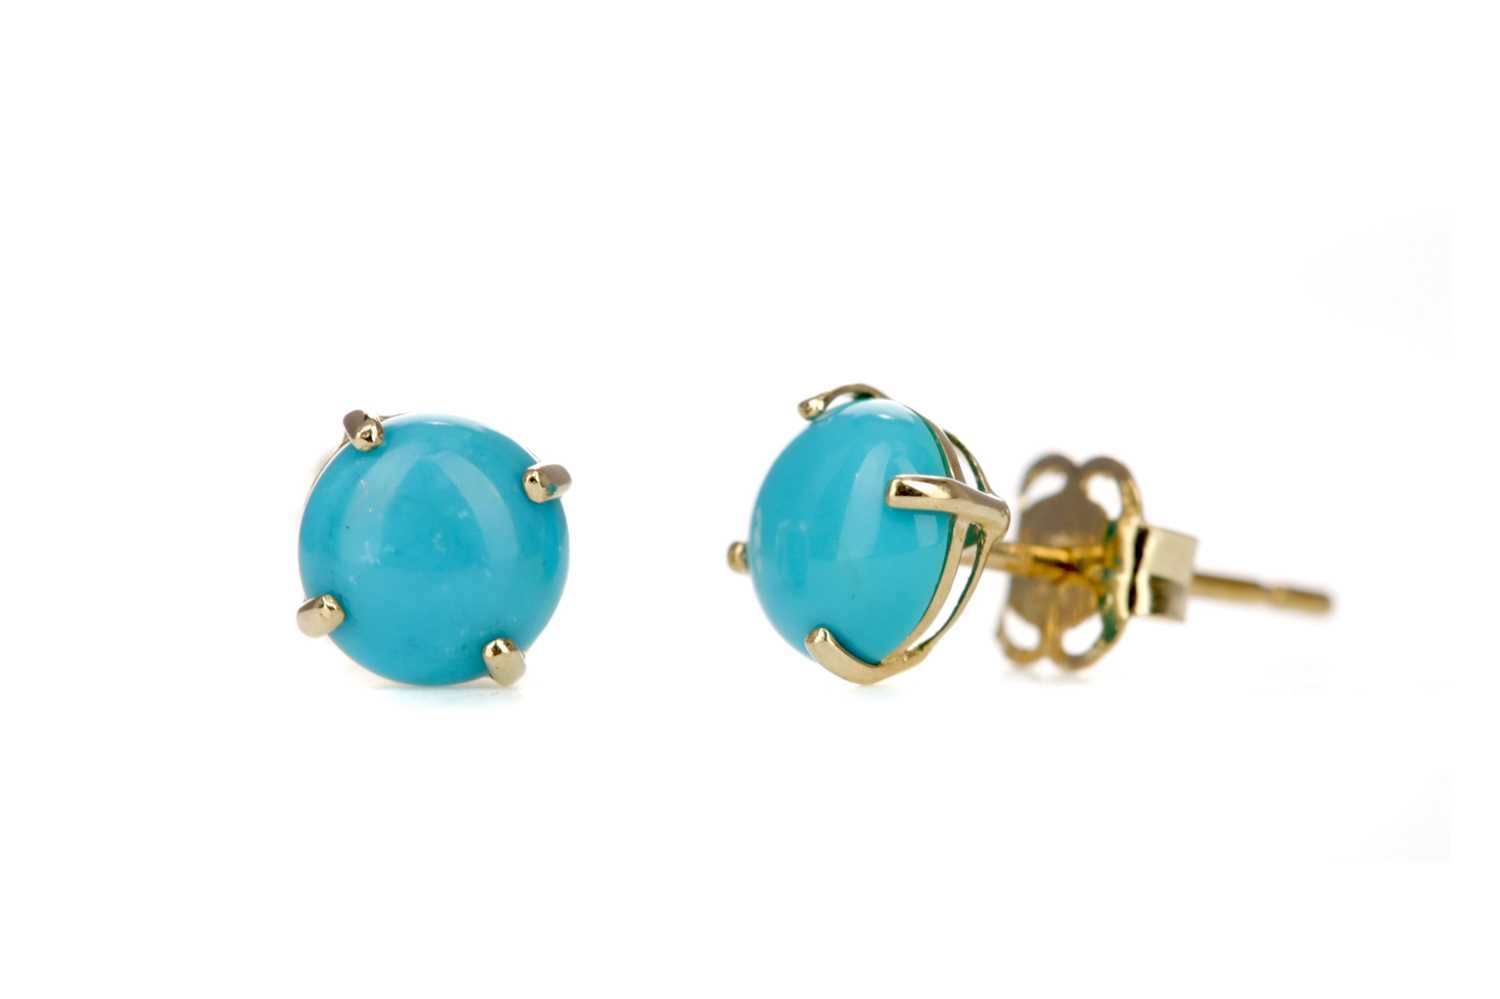 Lot 368 - A PAIR OF TURQUOISE STUD EARRINGS